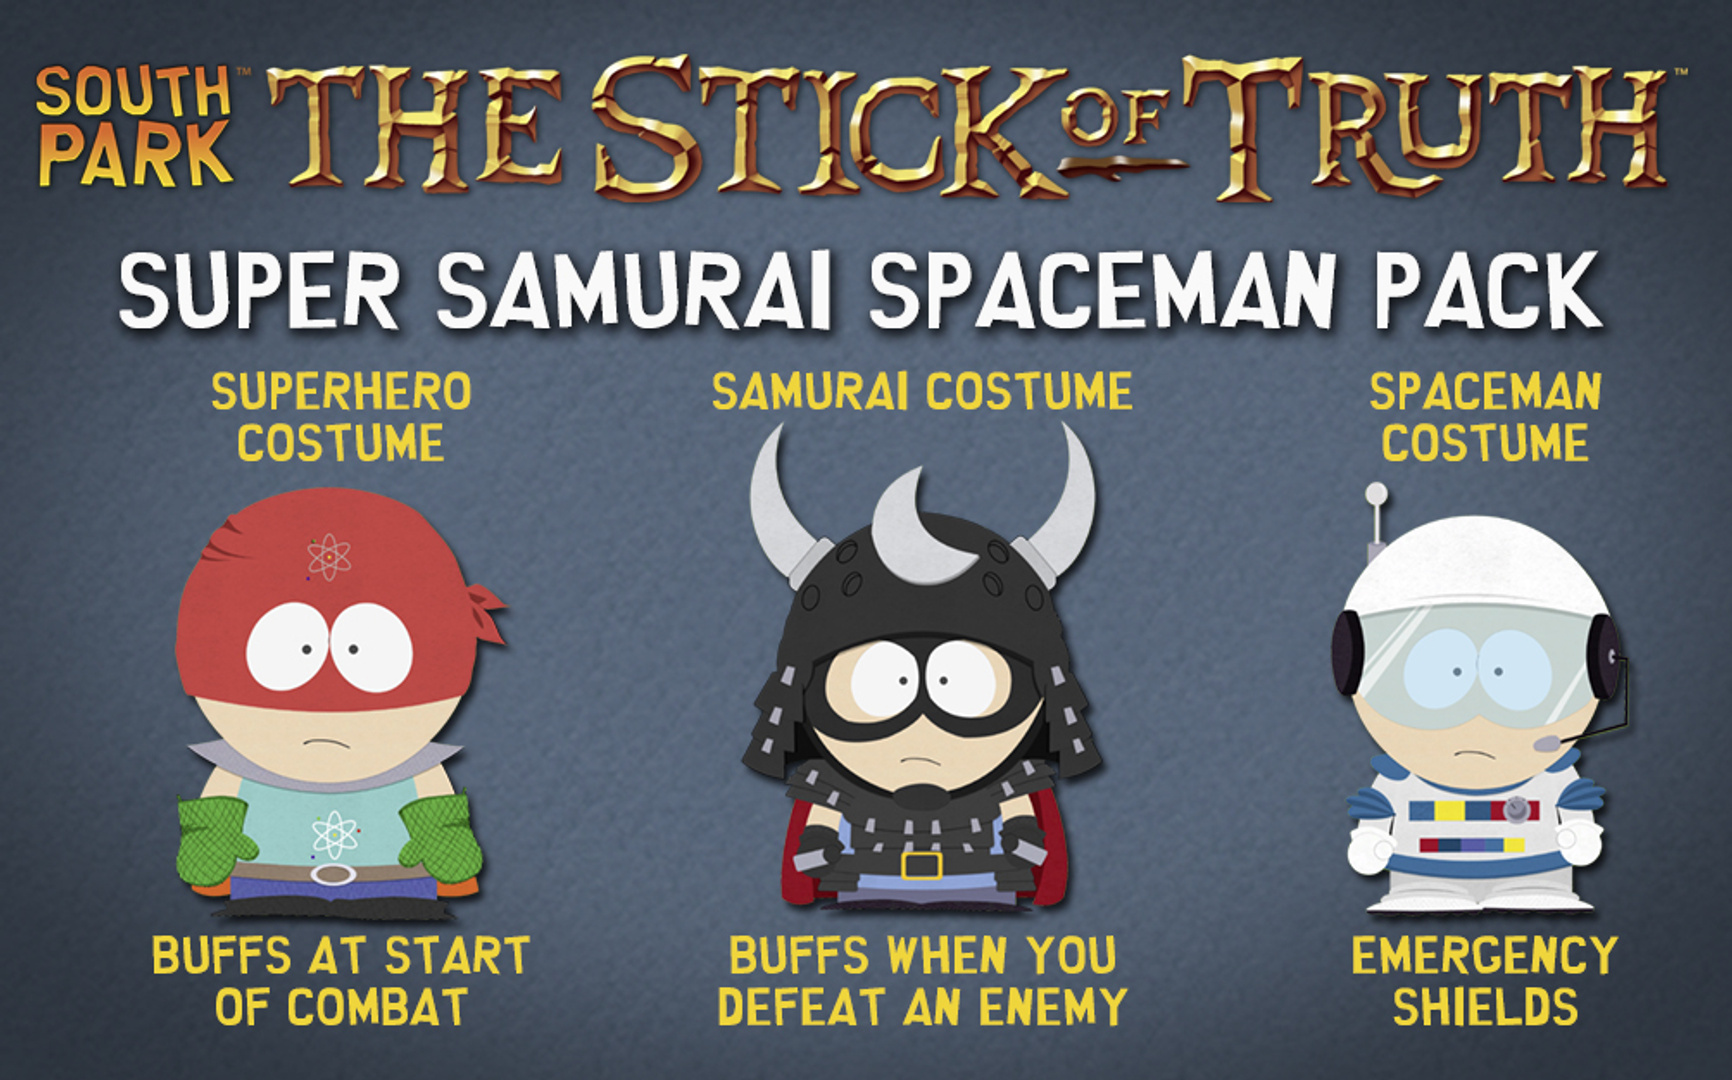 buy South Park: The Stick of Truth - Super Samurai Spaceman Pack cd key for all platform